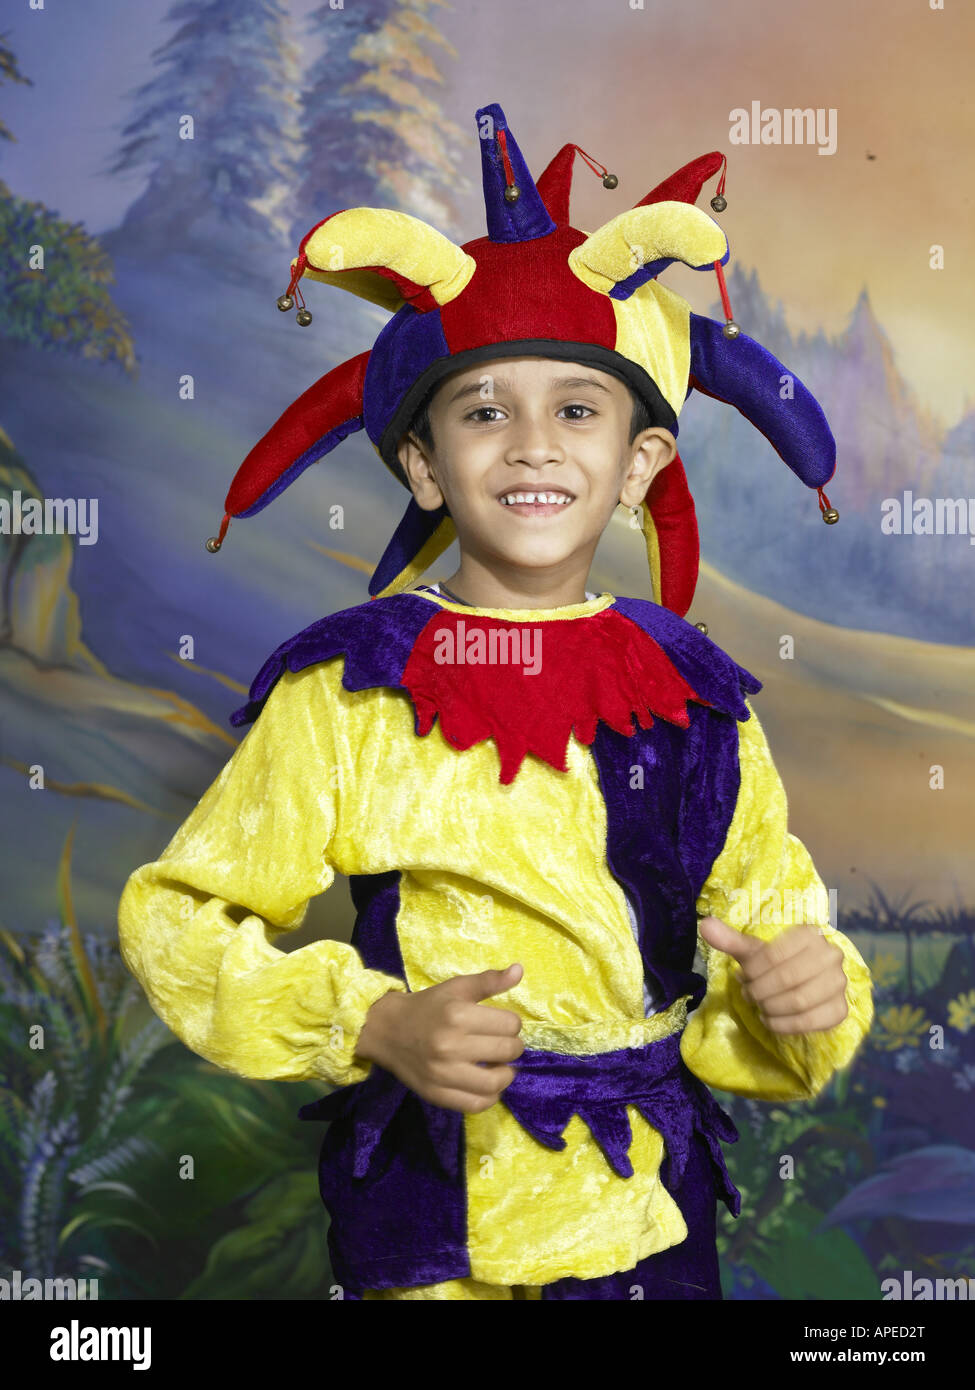 18da55255 South Asian Indian boy dressed as joker performing fancy dress competition  on stage in nursery school MR